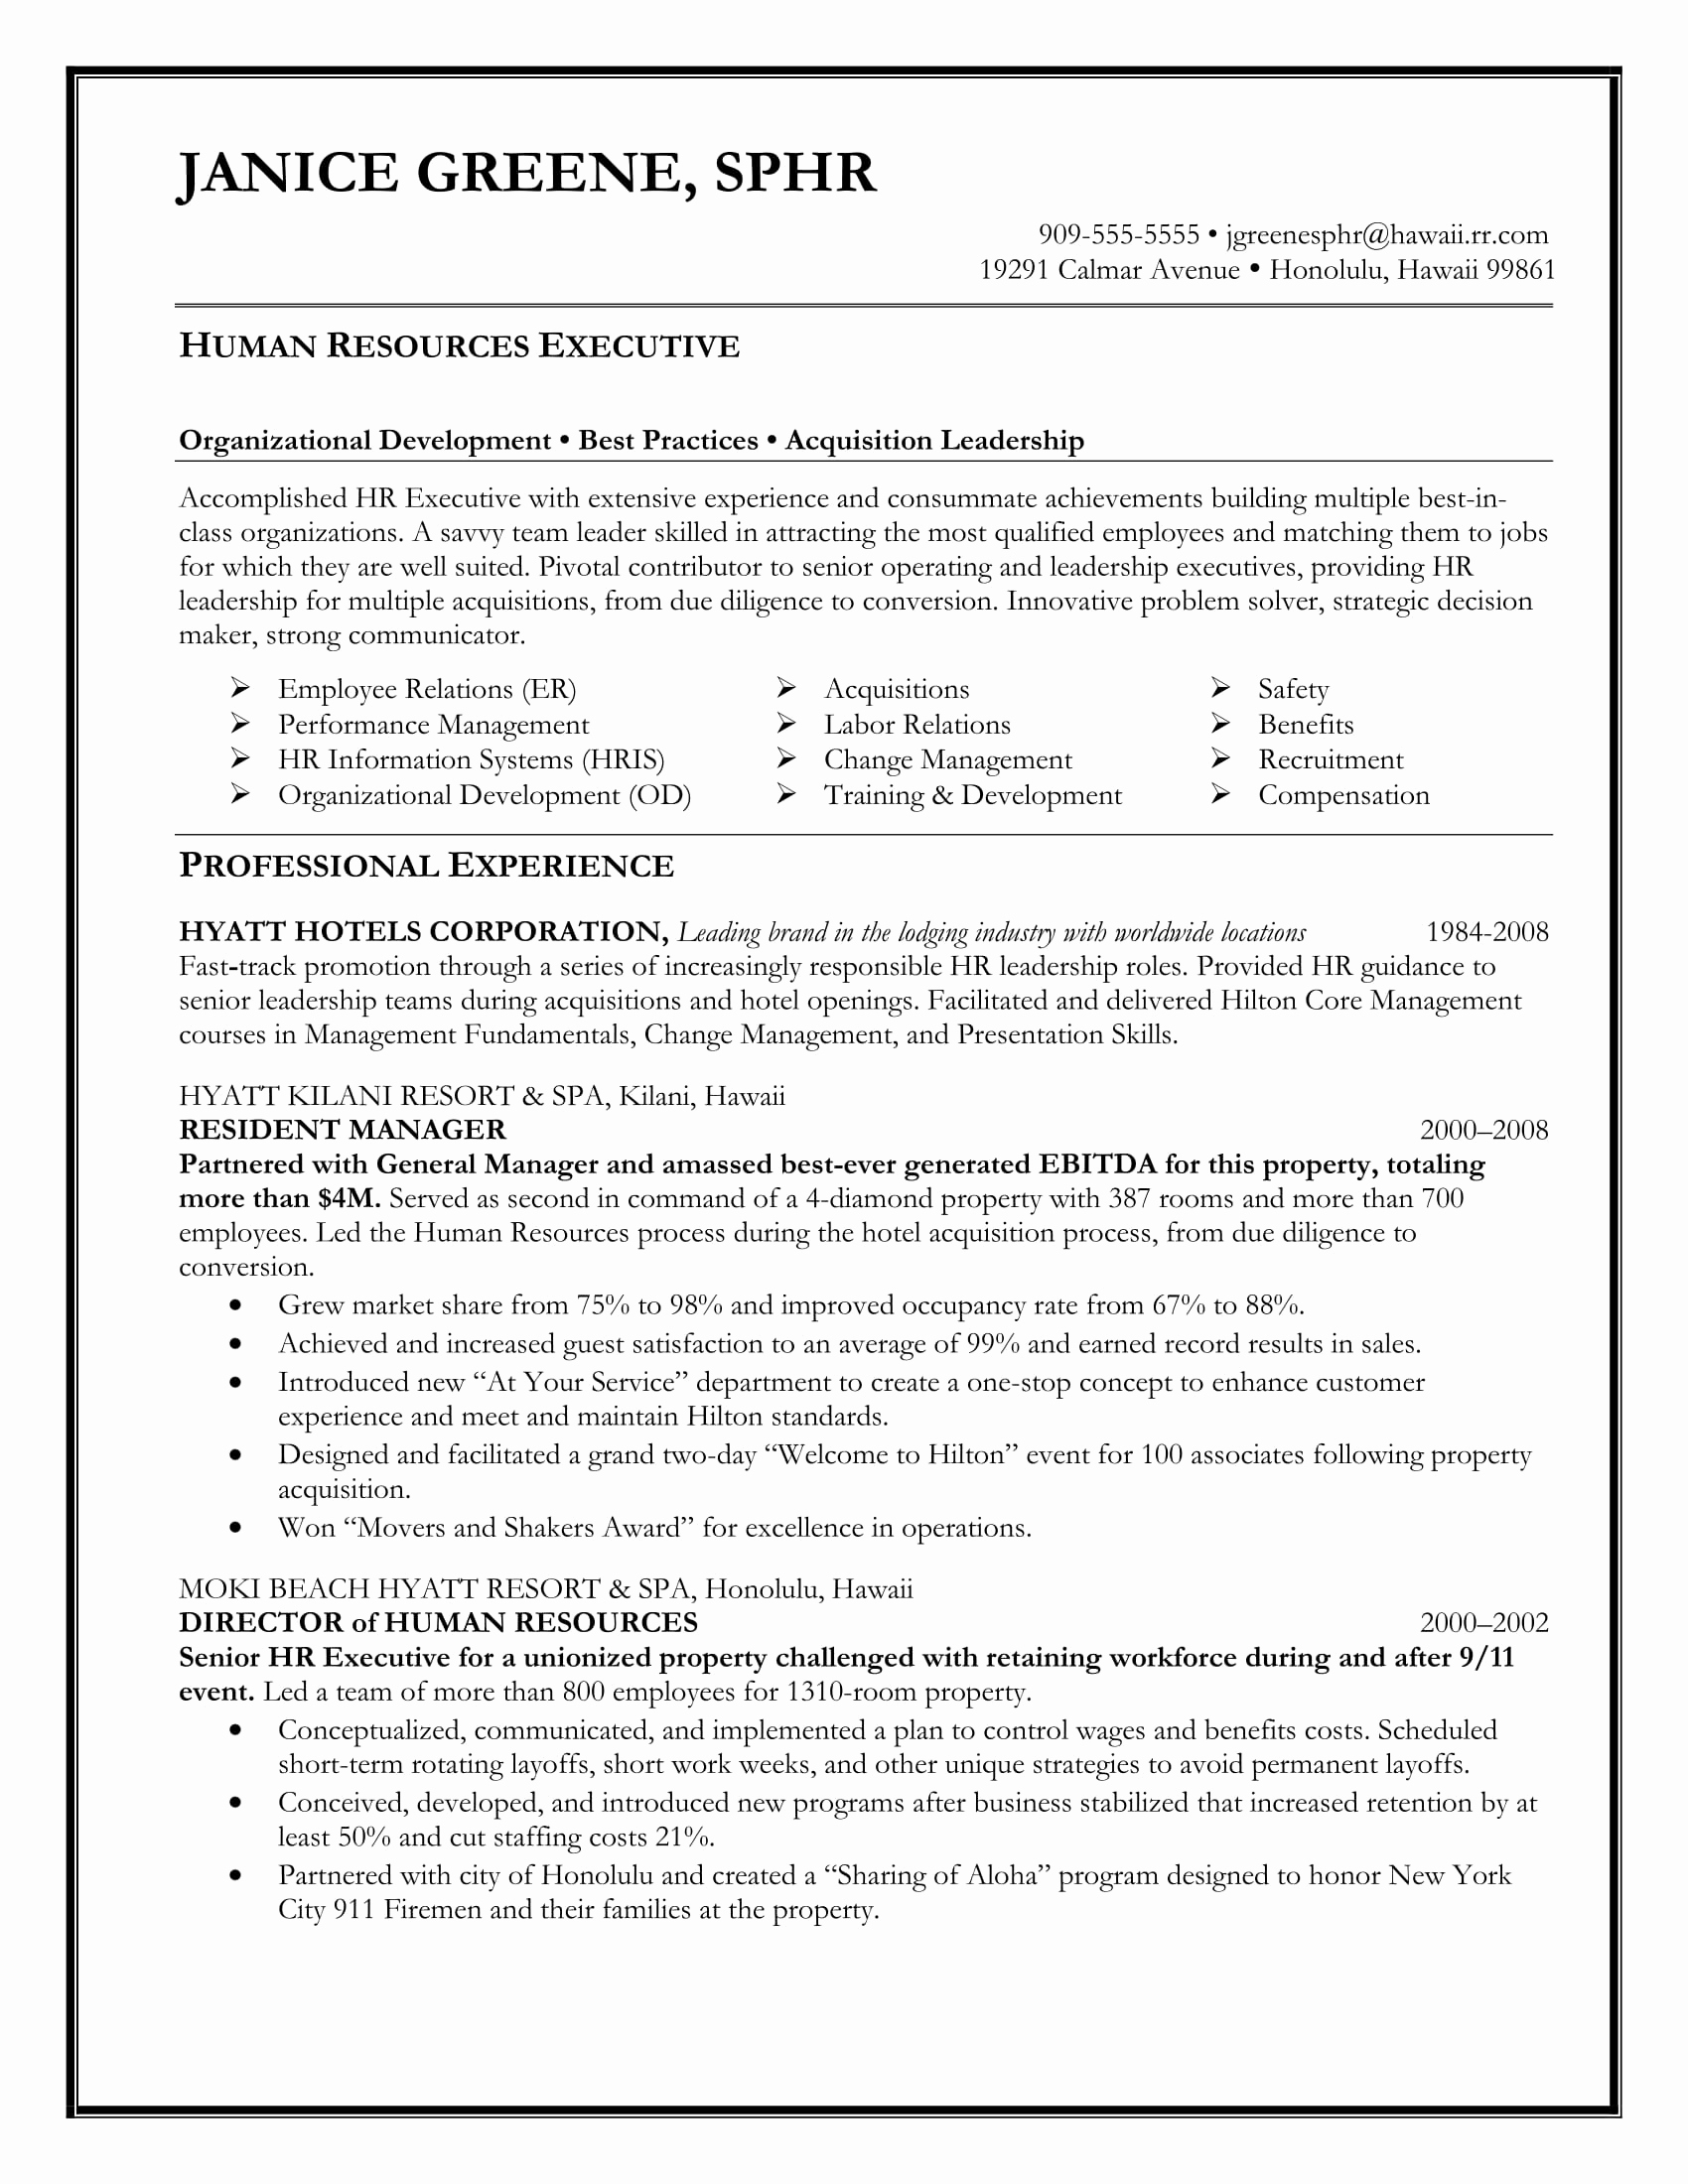 Upwardly Global Resume Template - 27 New Stock Upwardly Global Resume Template